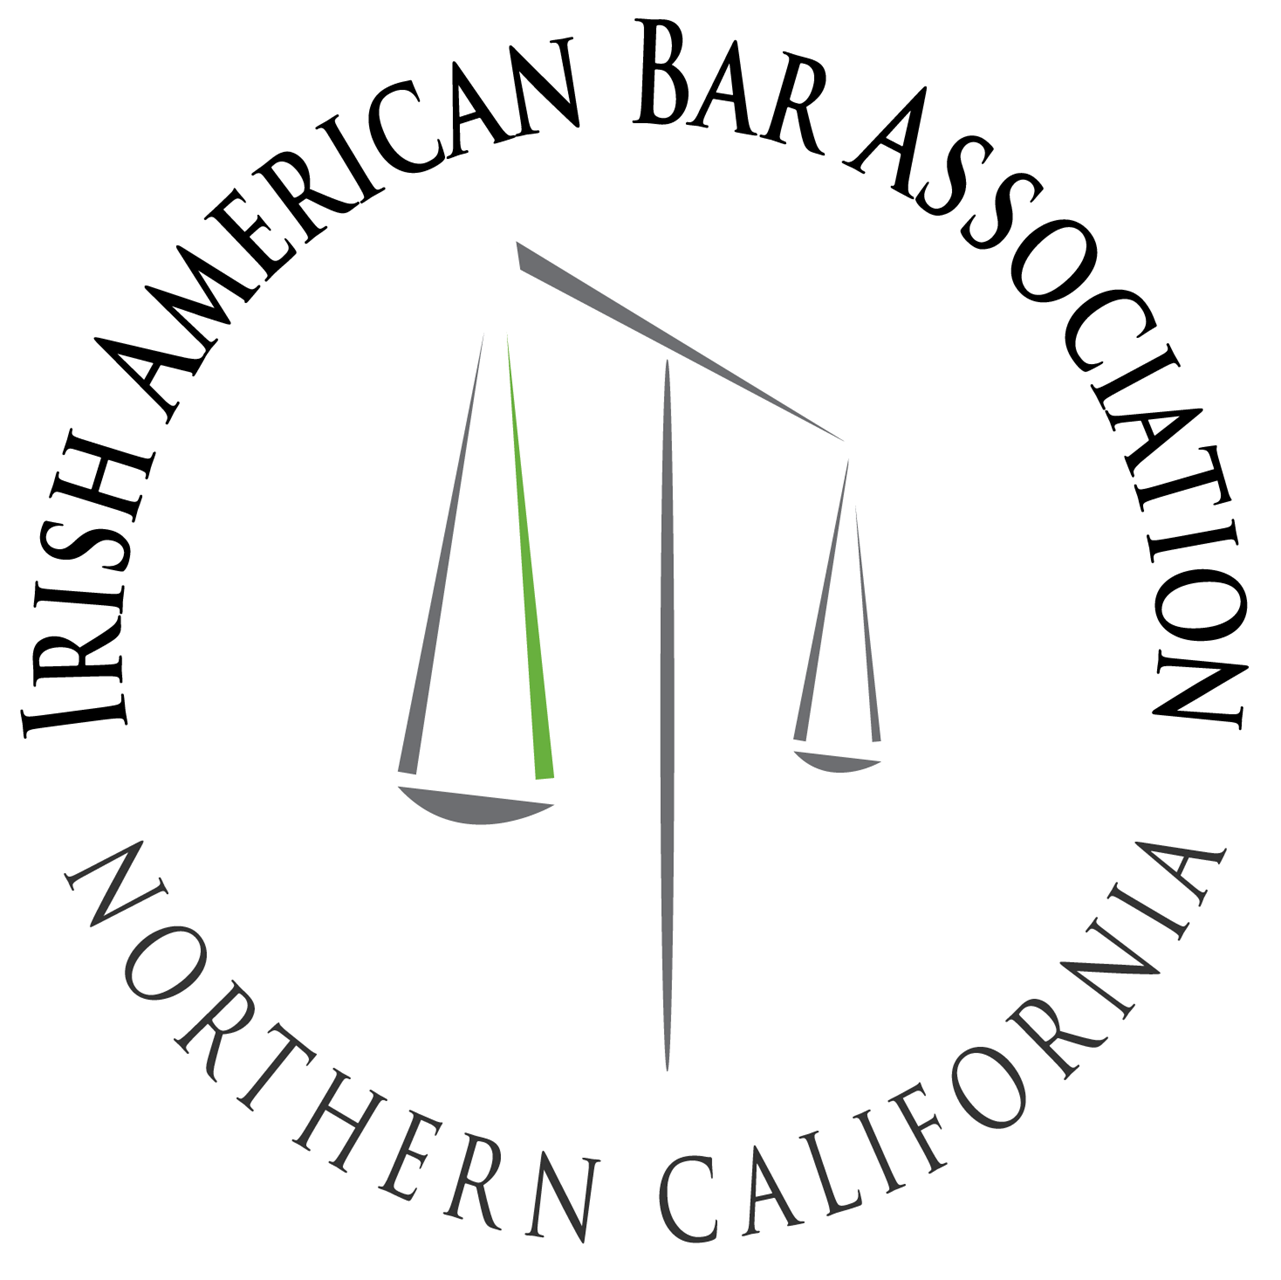 Irish American Bar Association of Northern California - Home